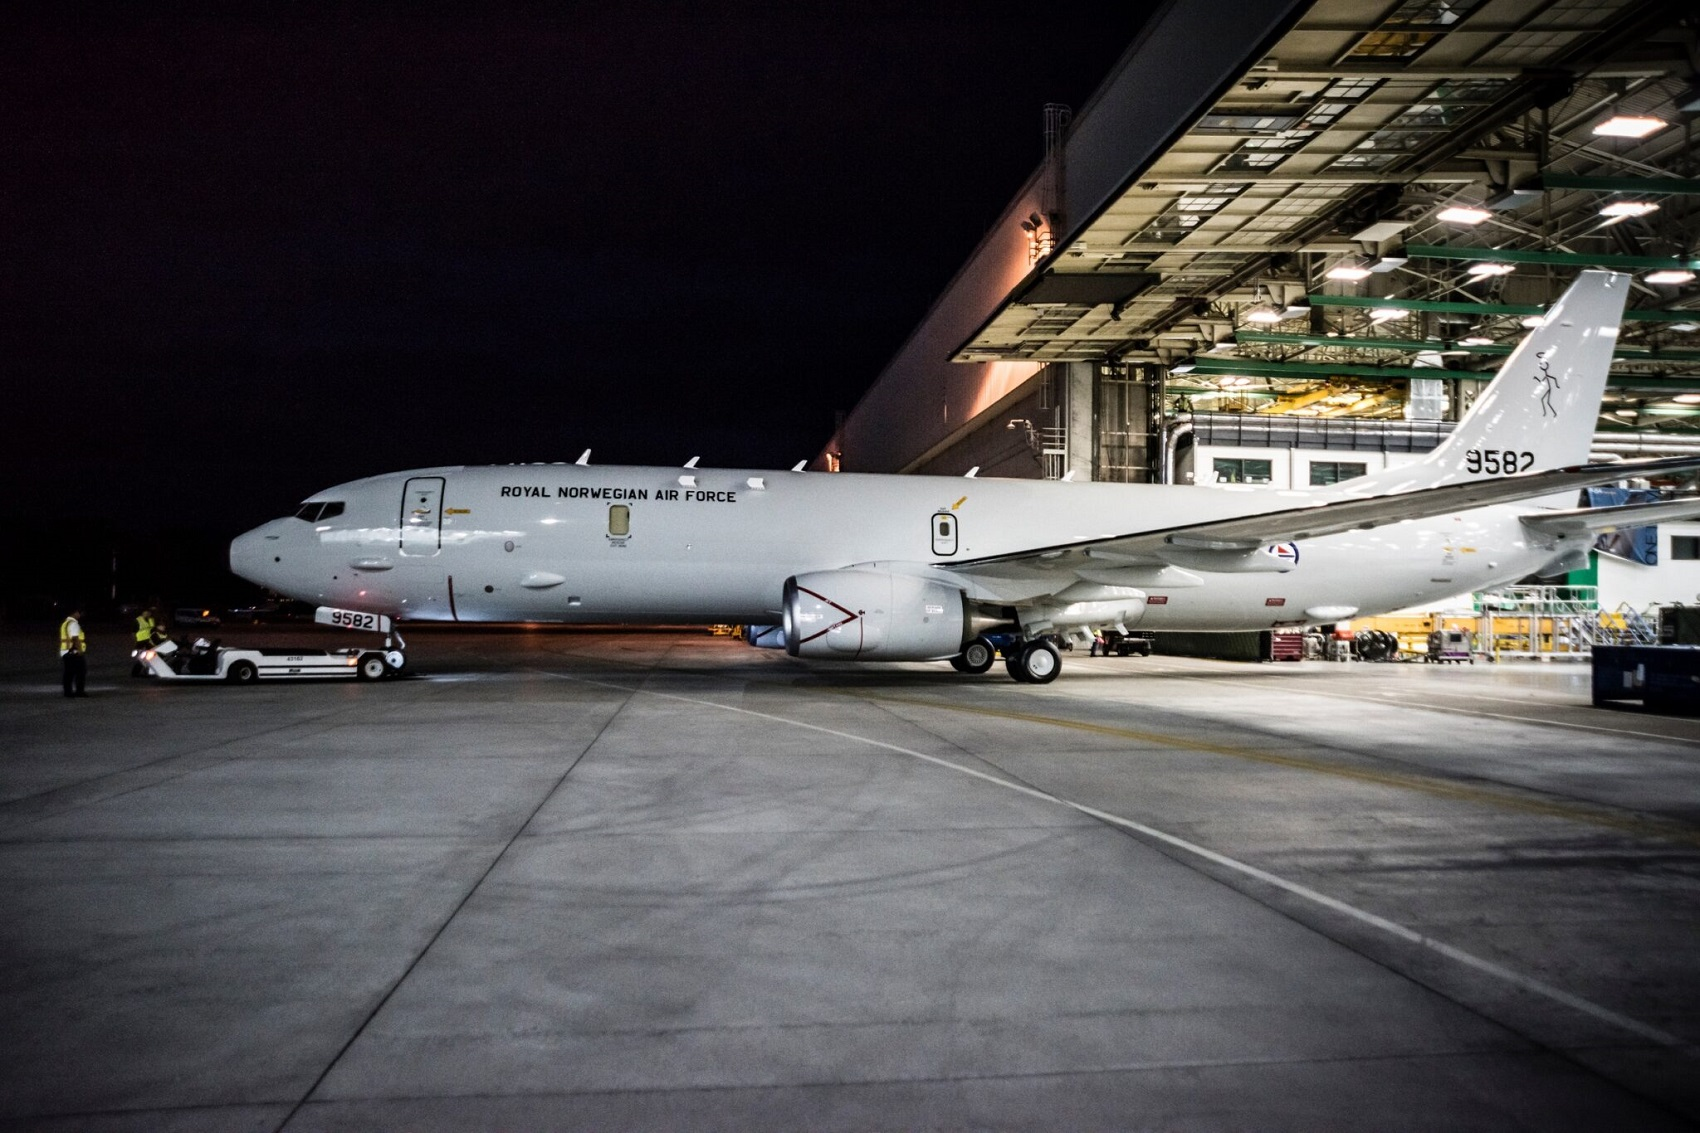 Norwegian Air Force's First Boeing P-8A Poseidon Rolls Out of the Paint Shop